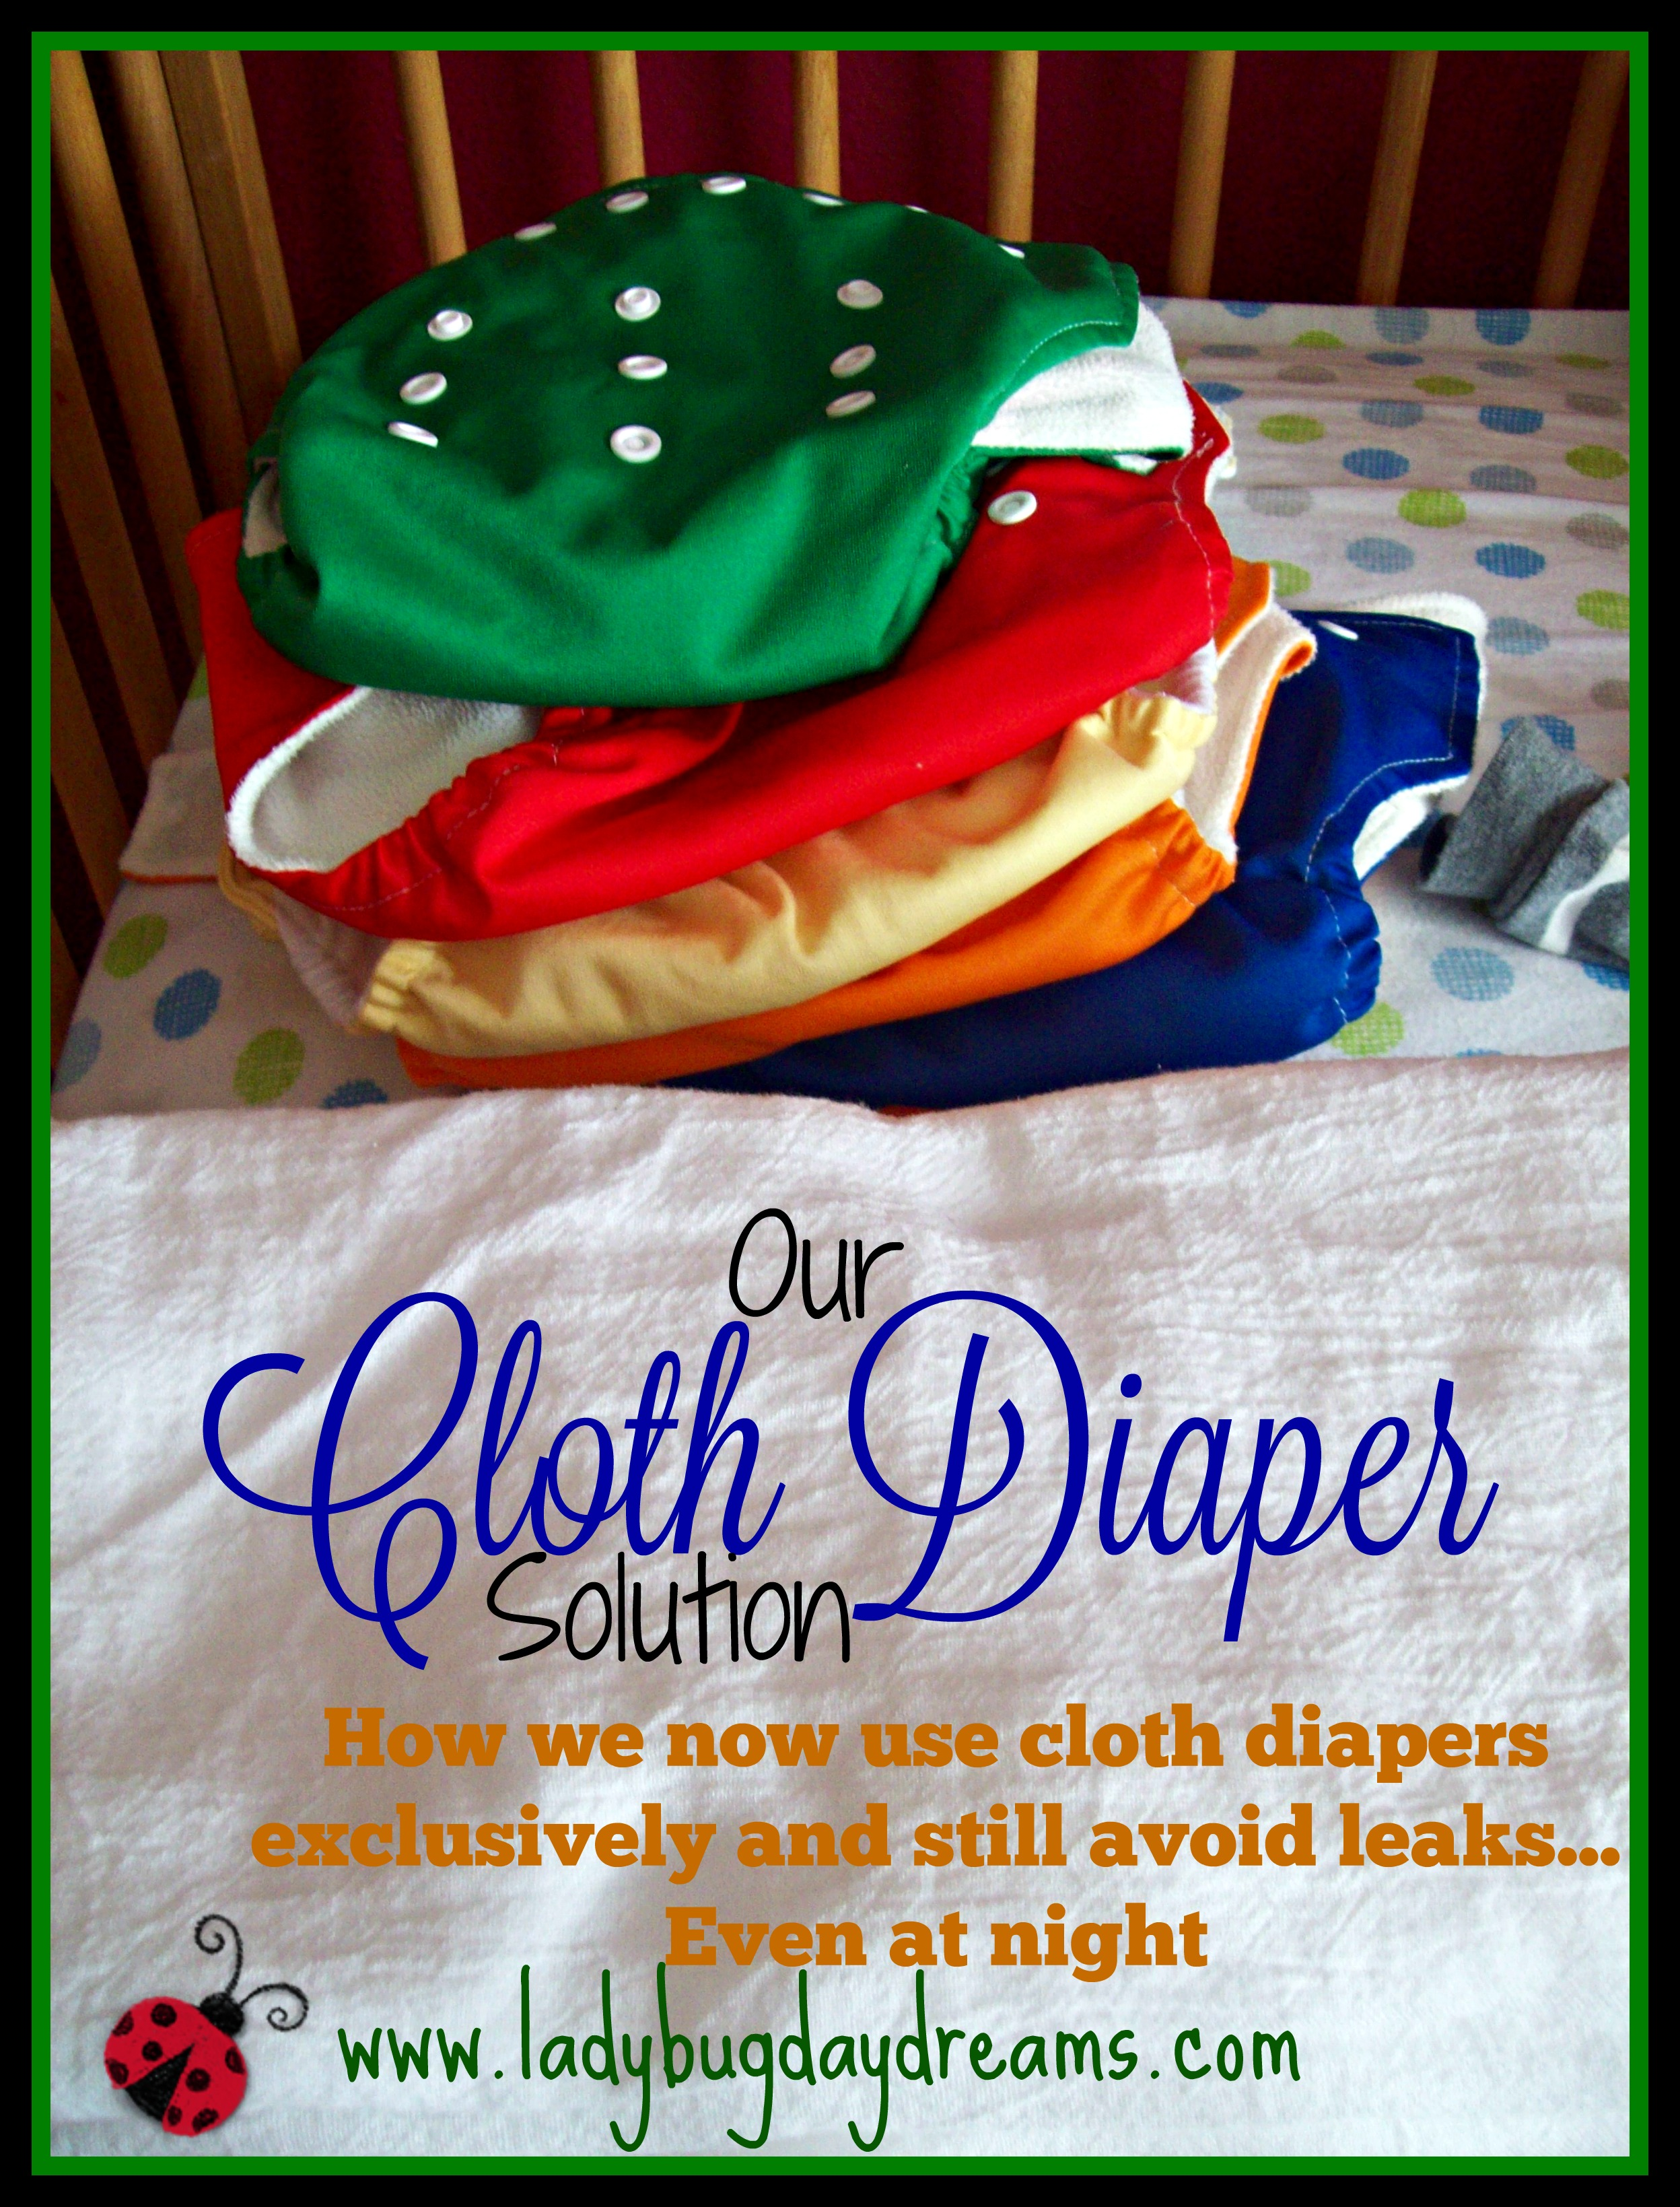 Our Cloth Diaper Solution